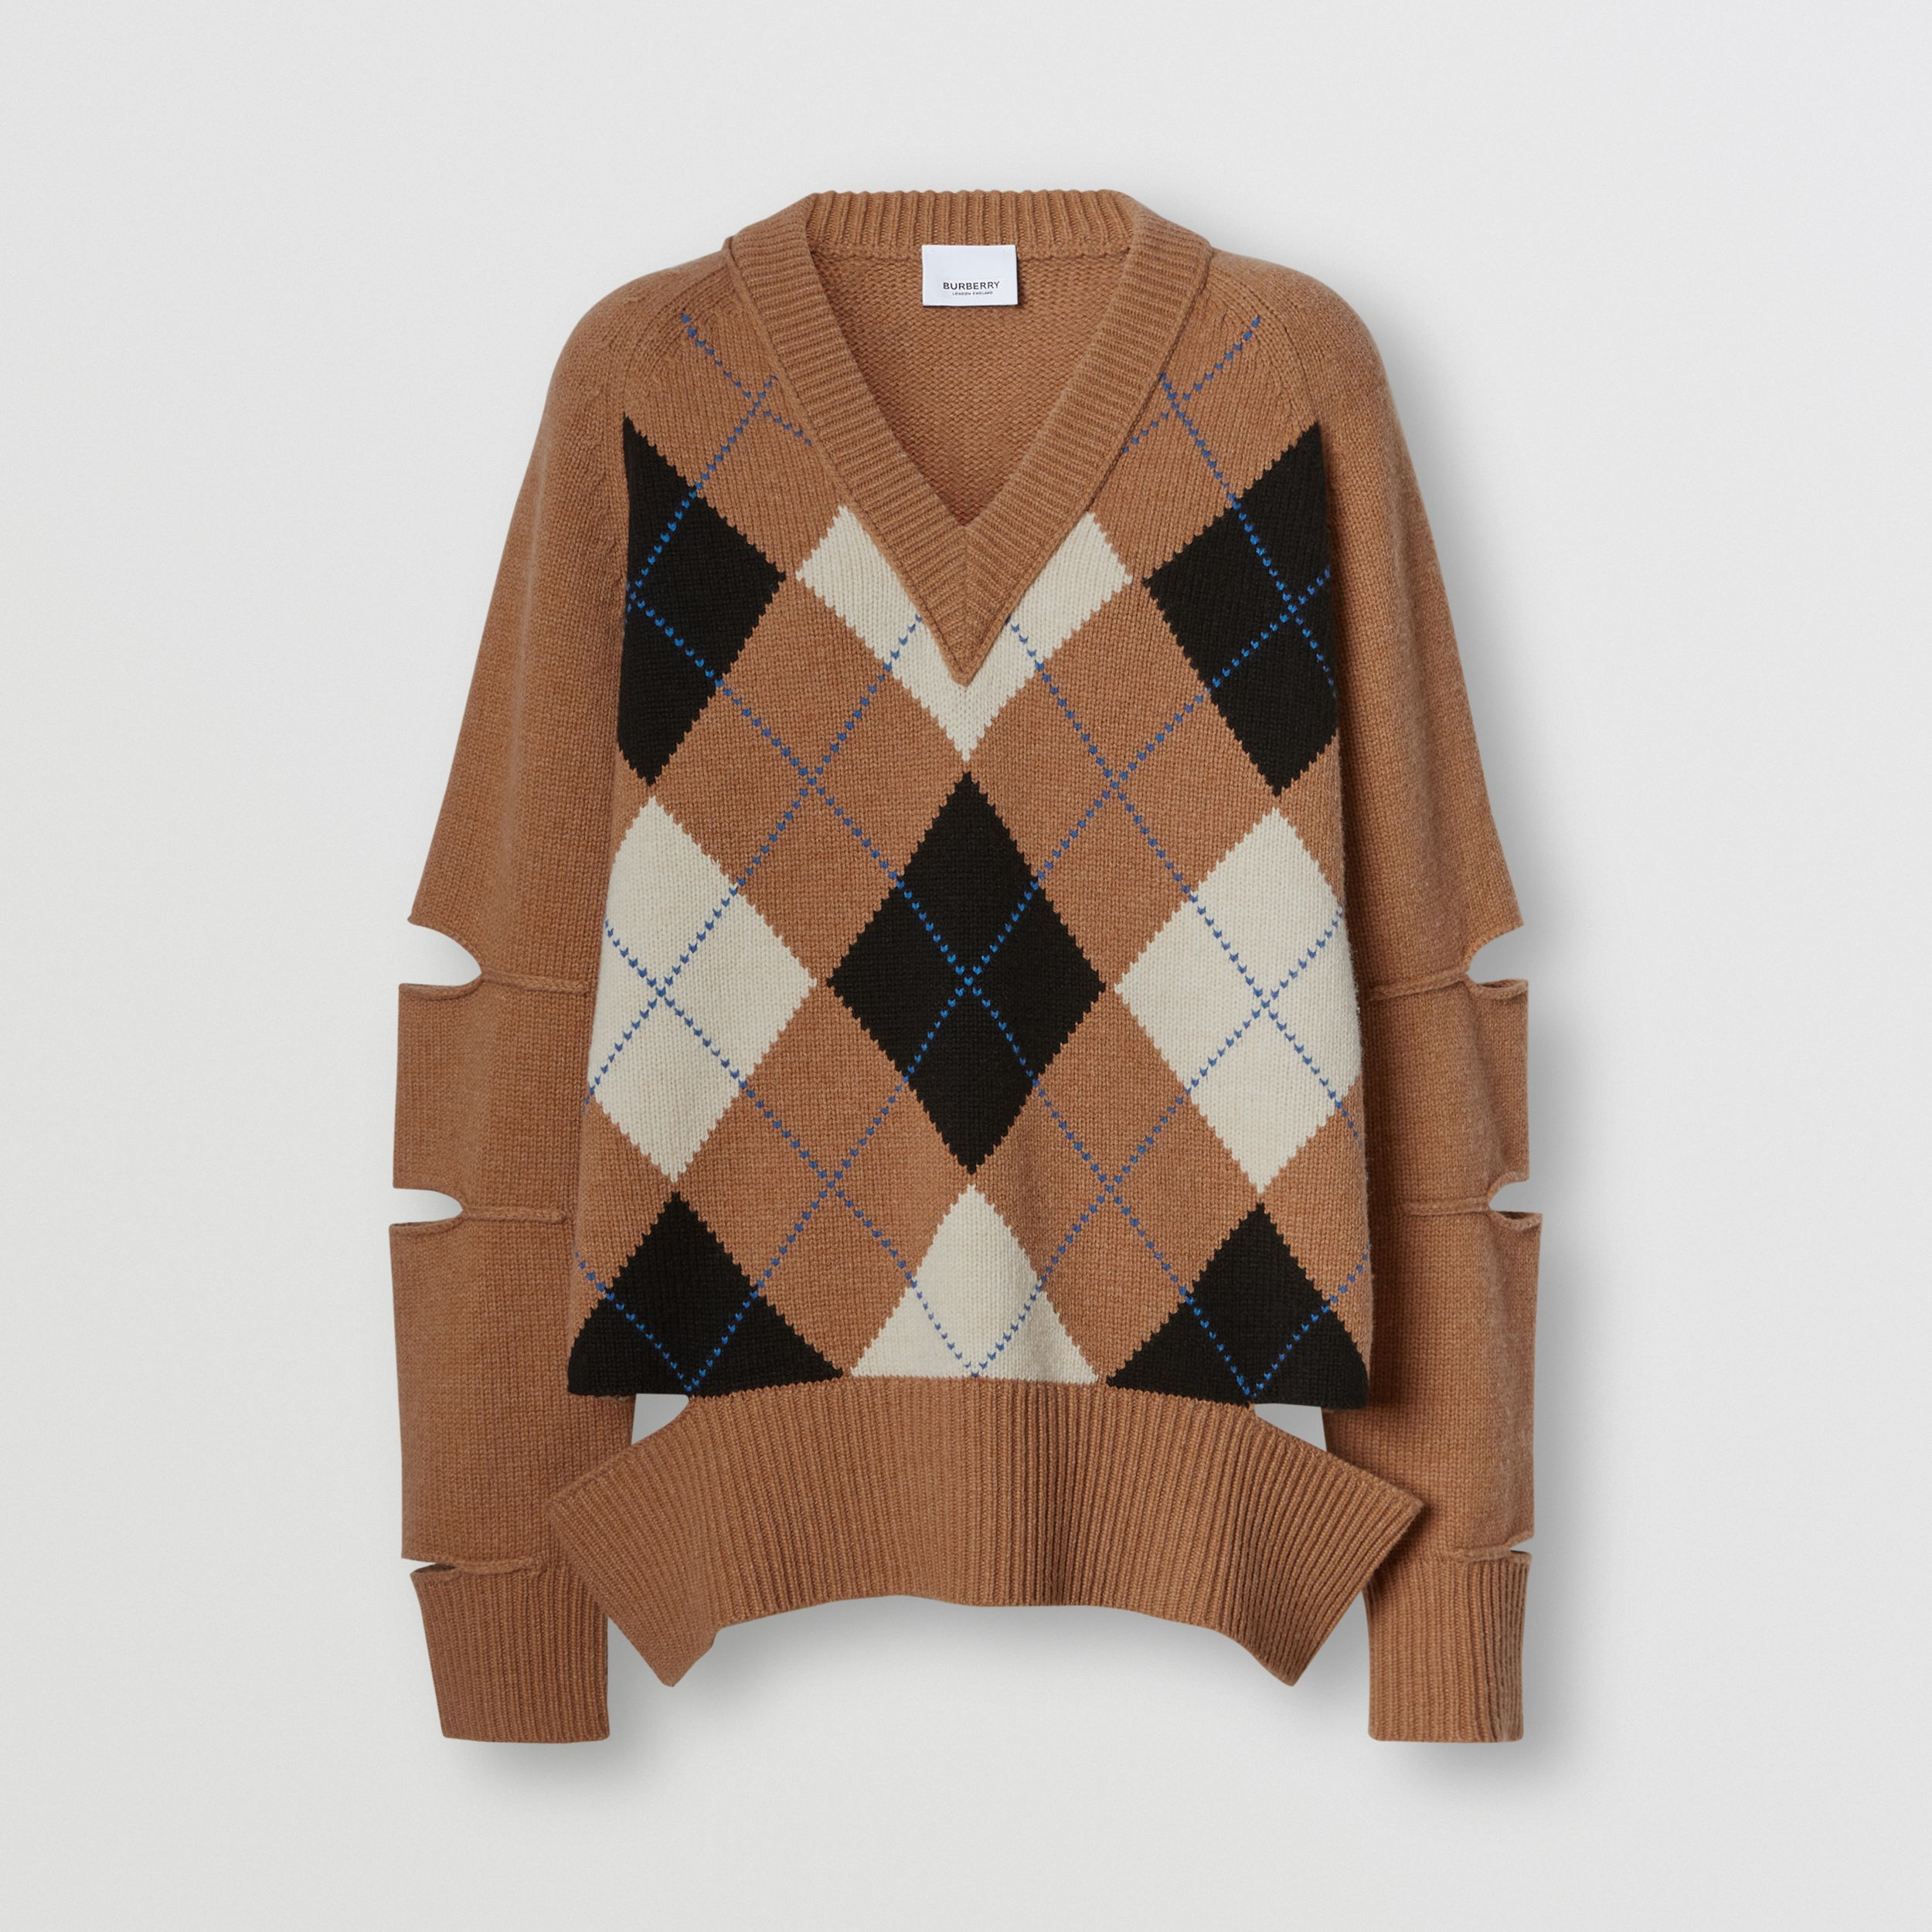 Cut-out Detail Argyle Intarsia Wool Cashmere Sweater in Camel - Women | Burberry - 4